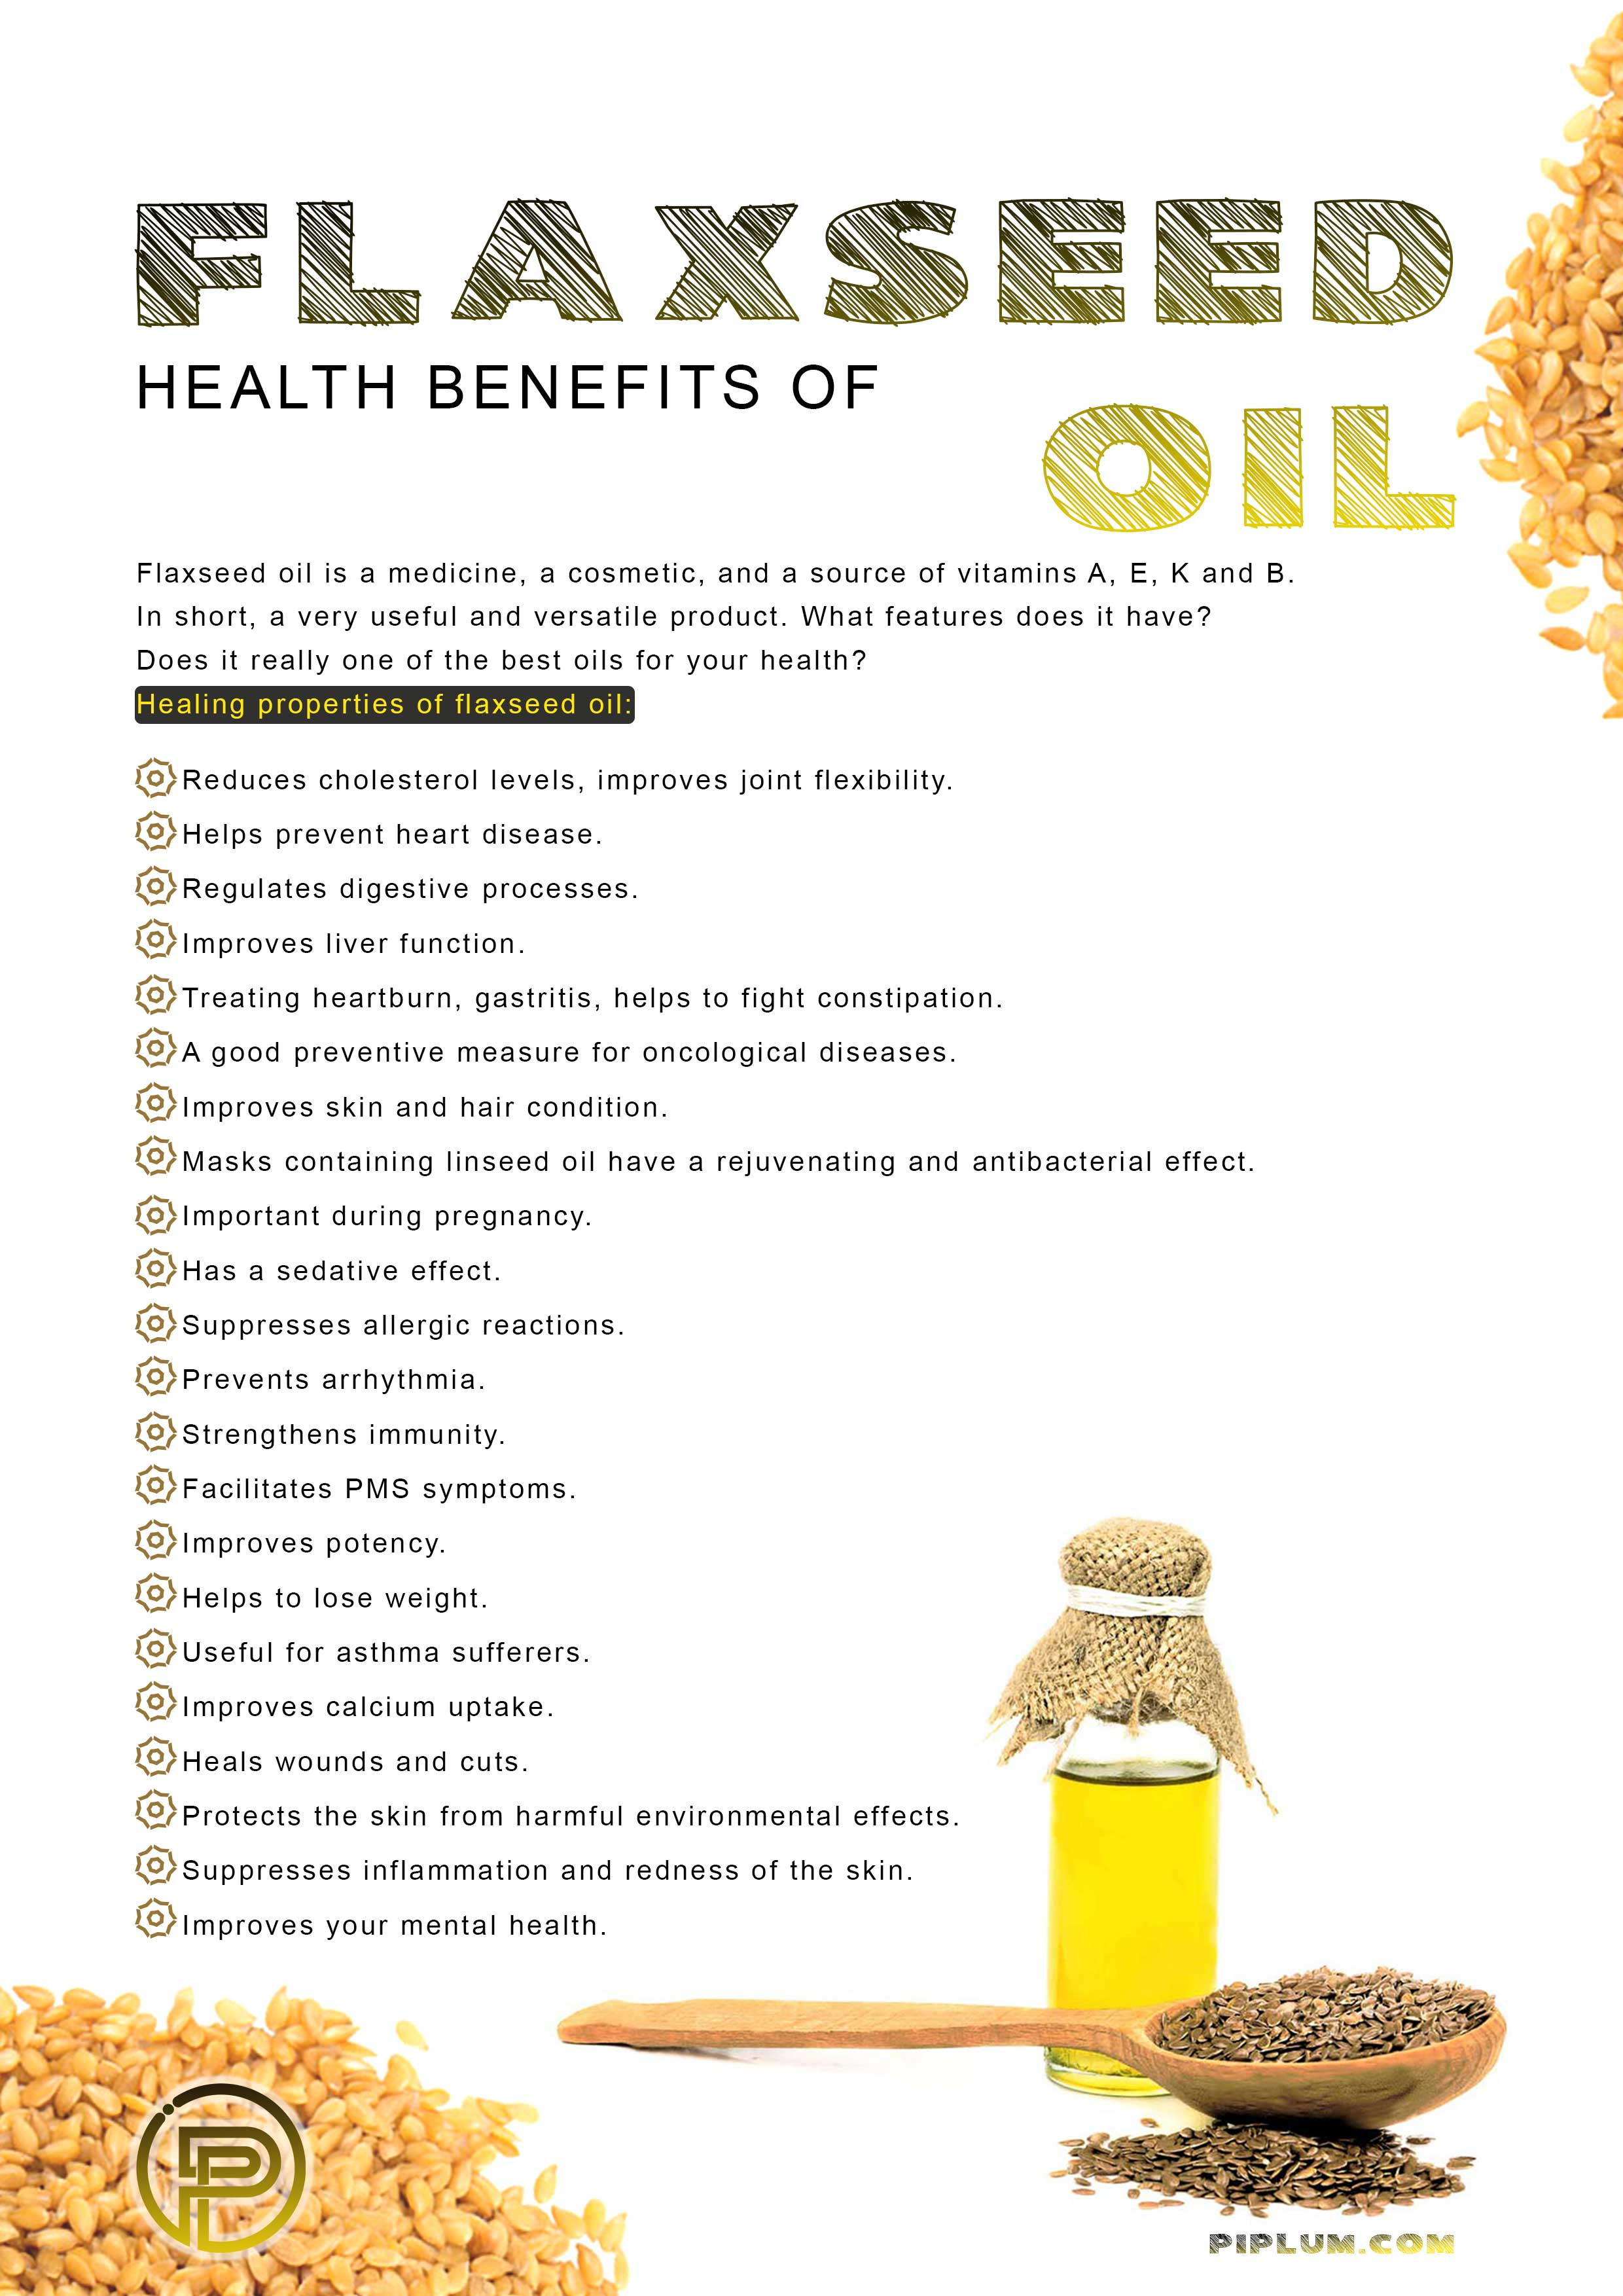 Health-benefits-of-flaxseed-oil.-Healing-properties.